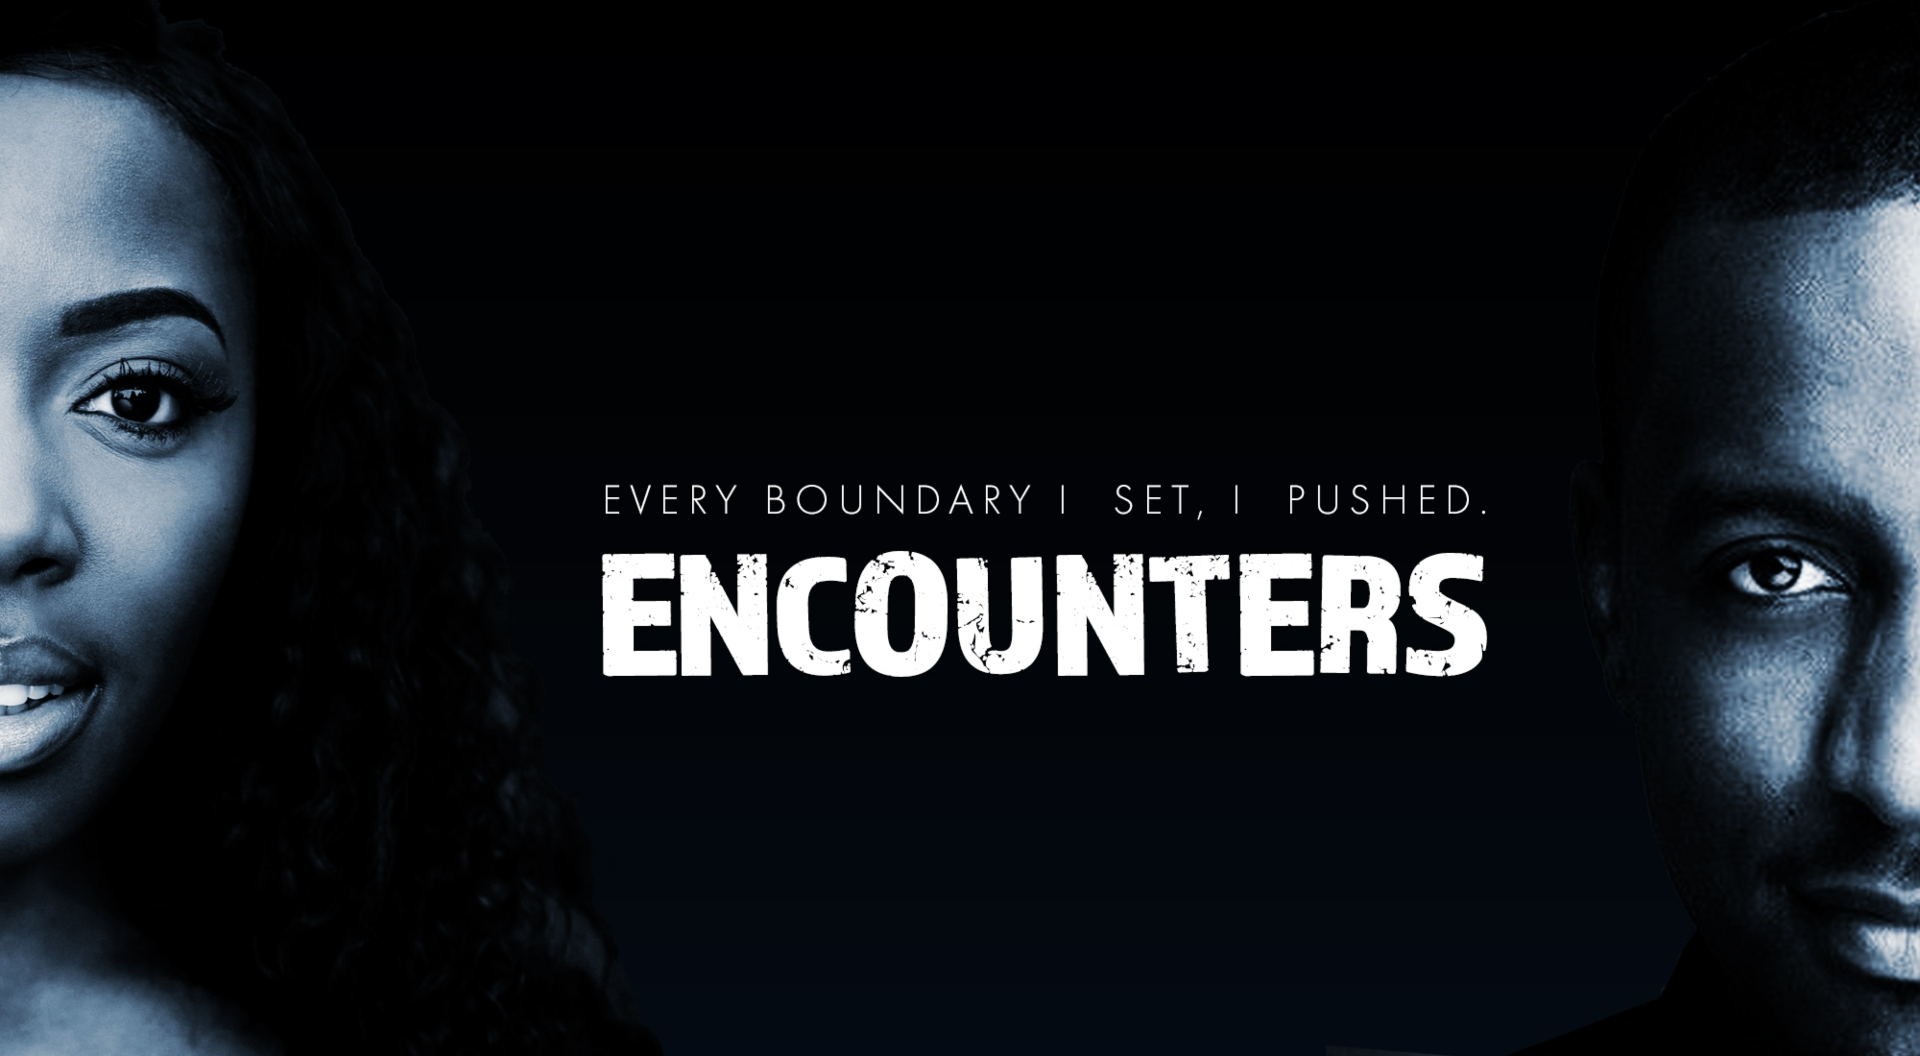 Encounters, Episode 1